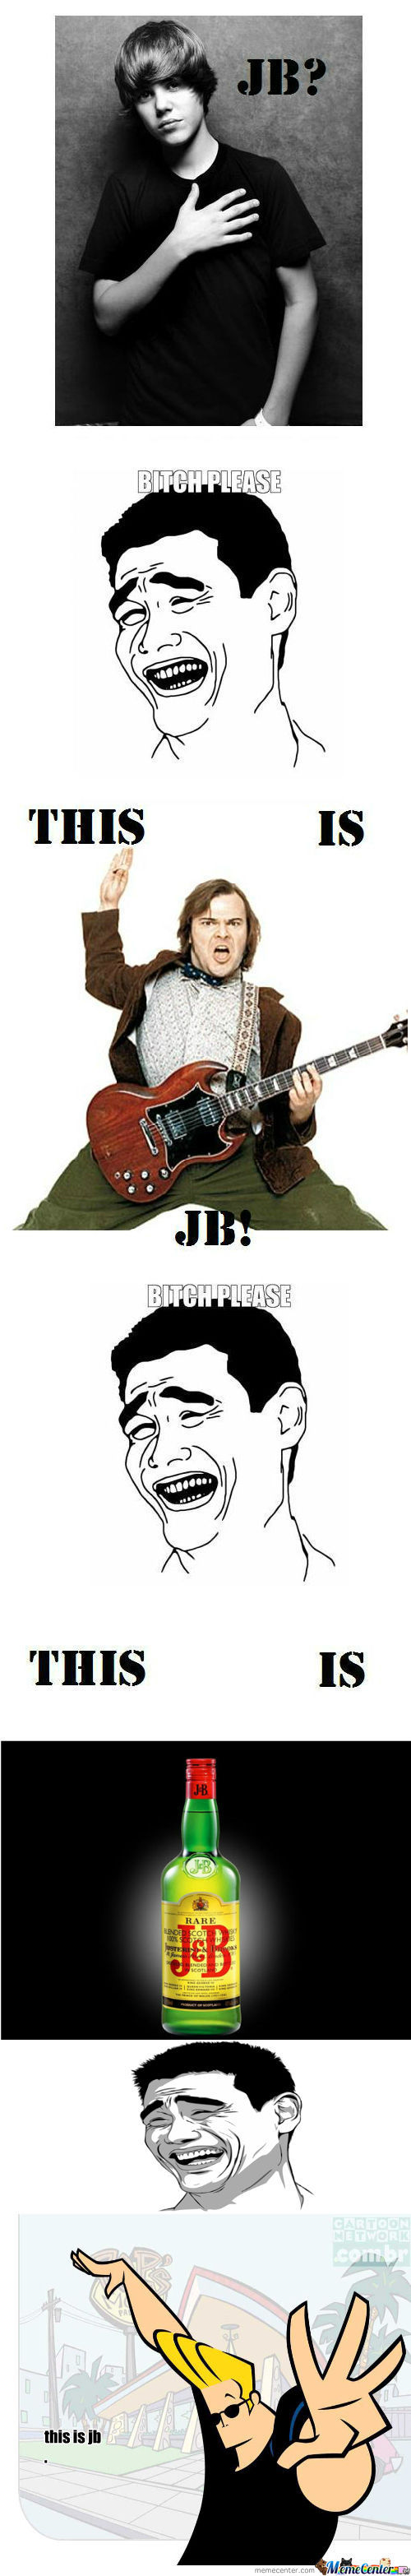 [RMX] [RMX] [RMX] To Me, Jb Still Means...